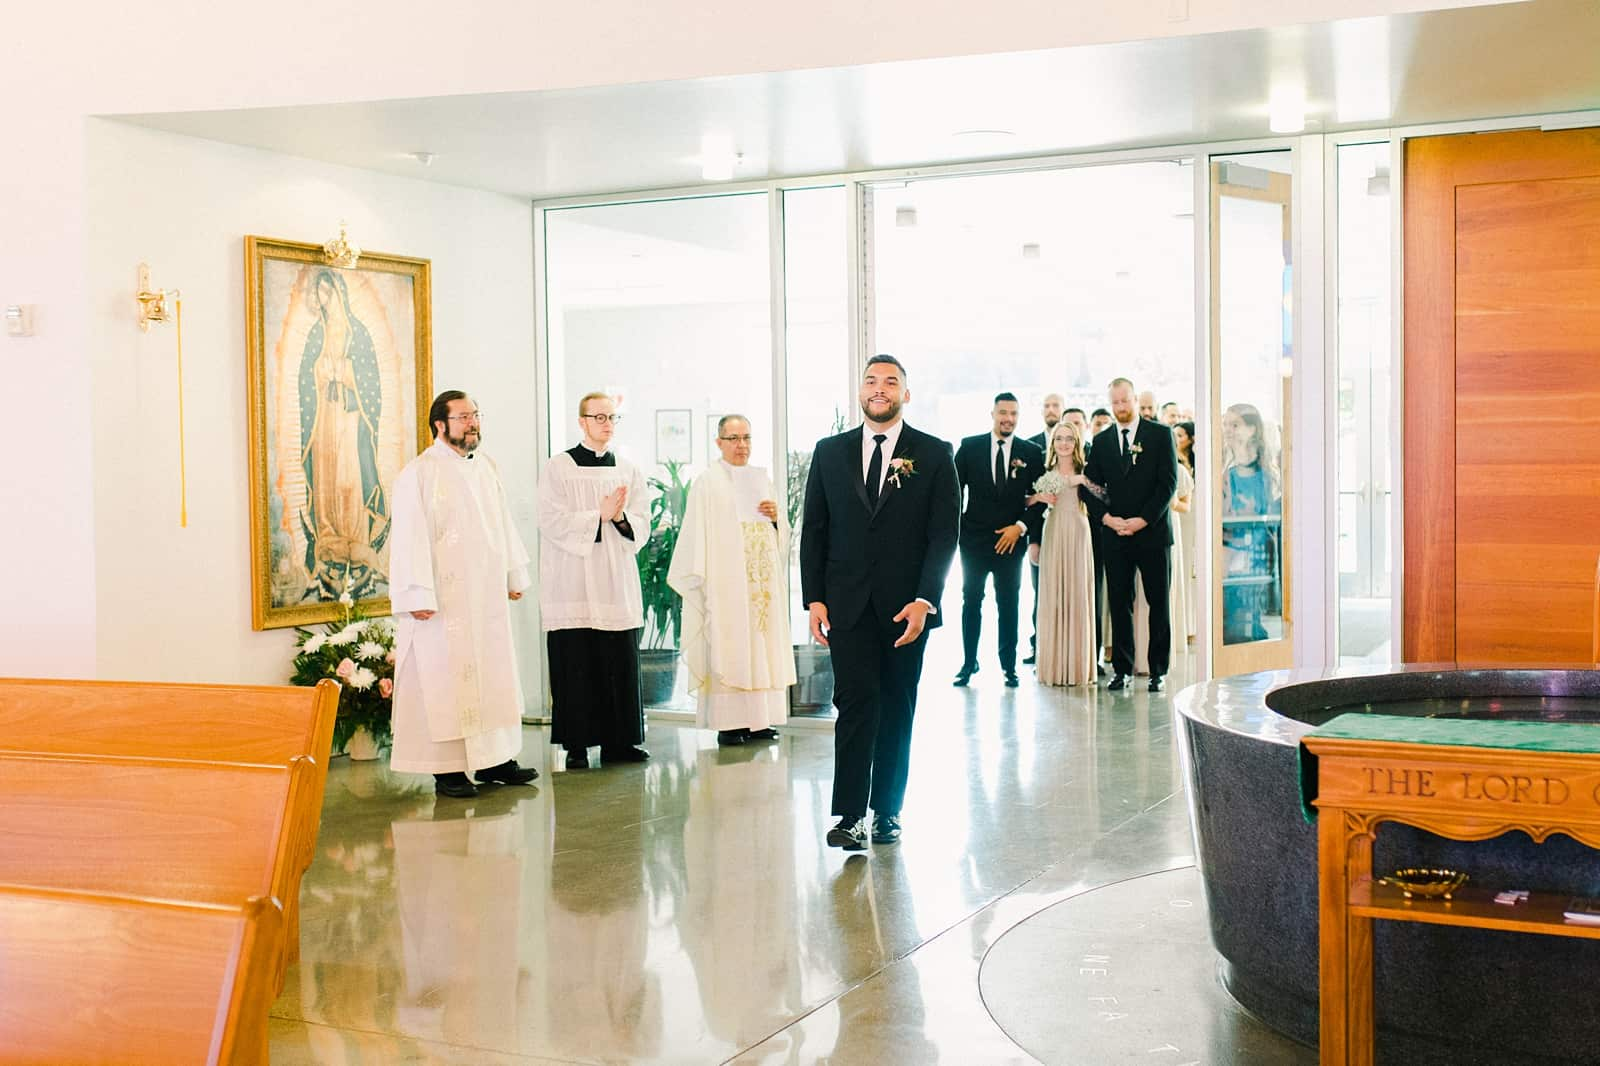 Groom walks down the aisle in traditional Catholic ceremony